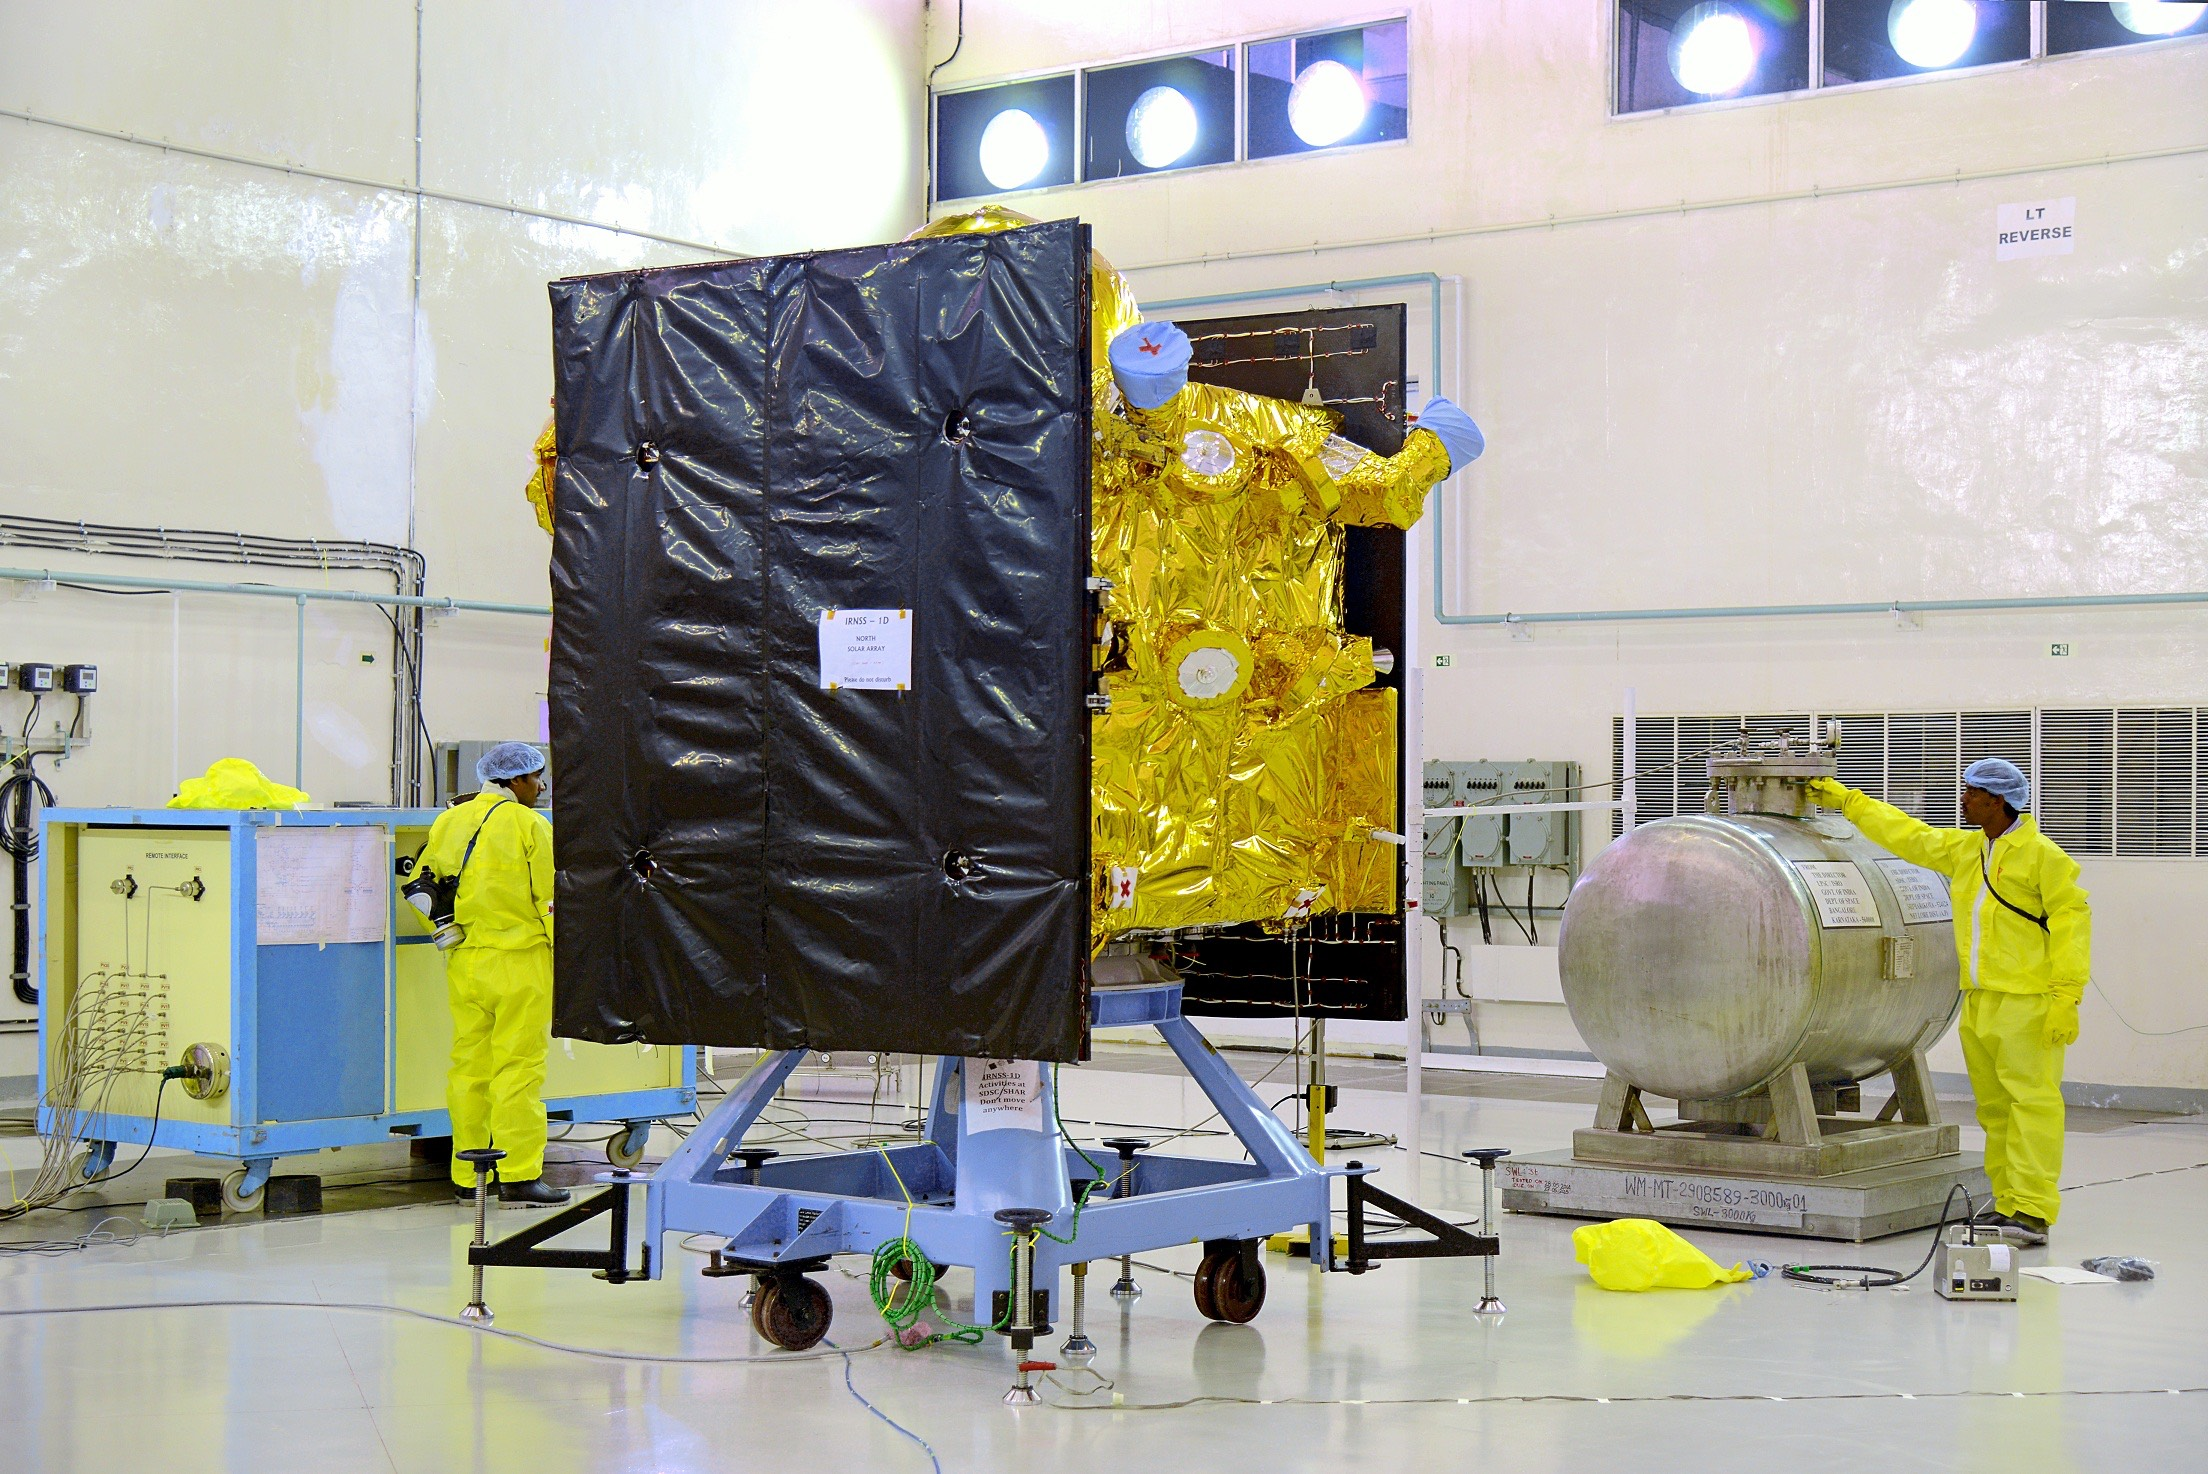 The propellant for the IRNSS 1D satellite being filled ahead of its launch in March 2015. Credit: ISRO